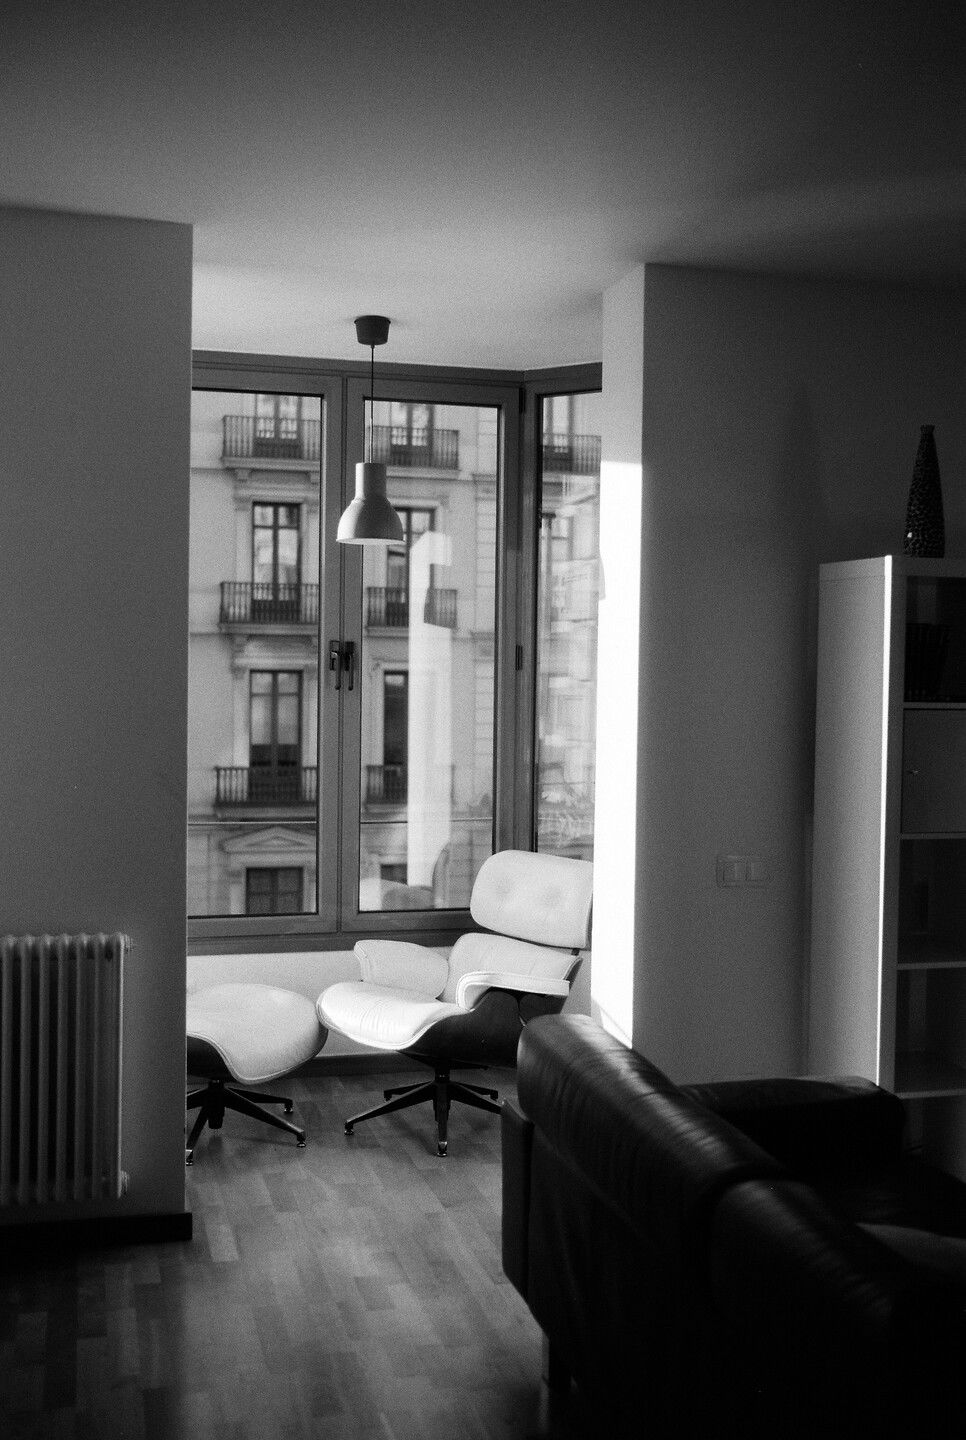 Sep 22, 2019 - Barcelona in Black and White